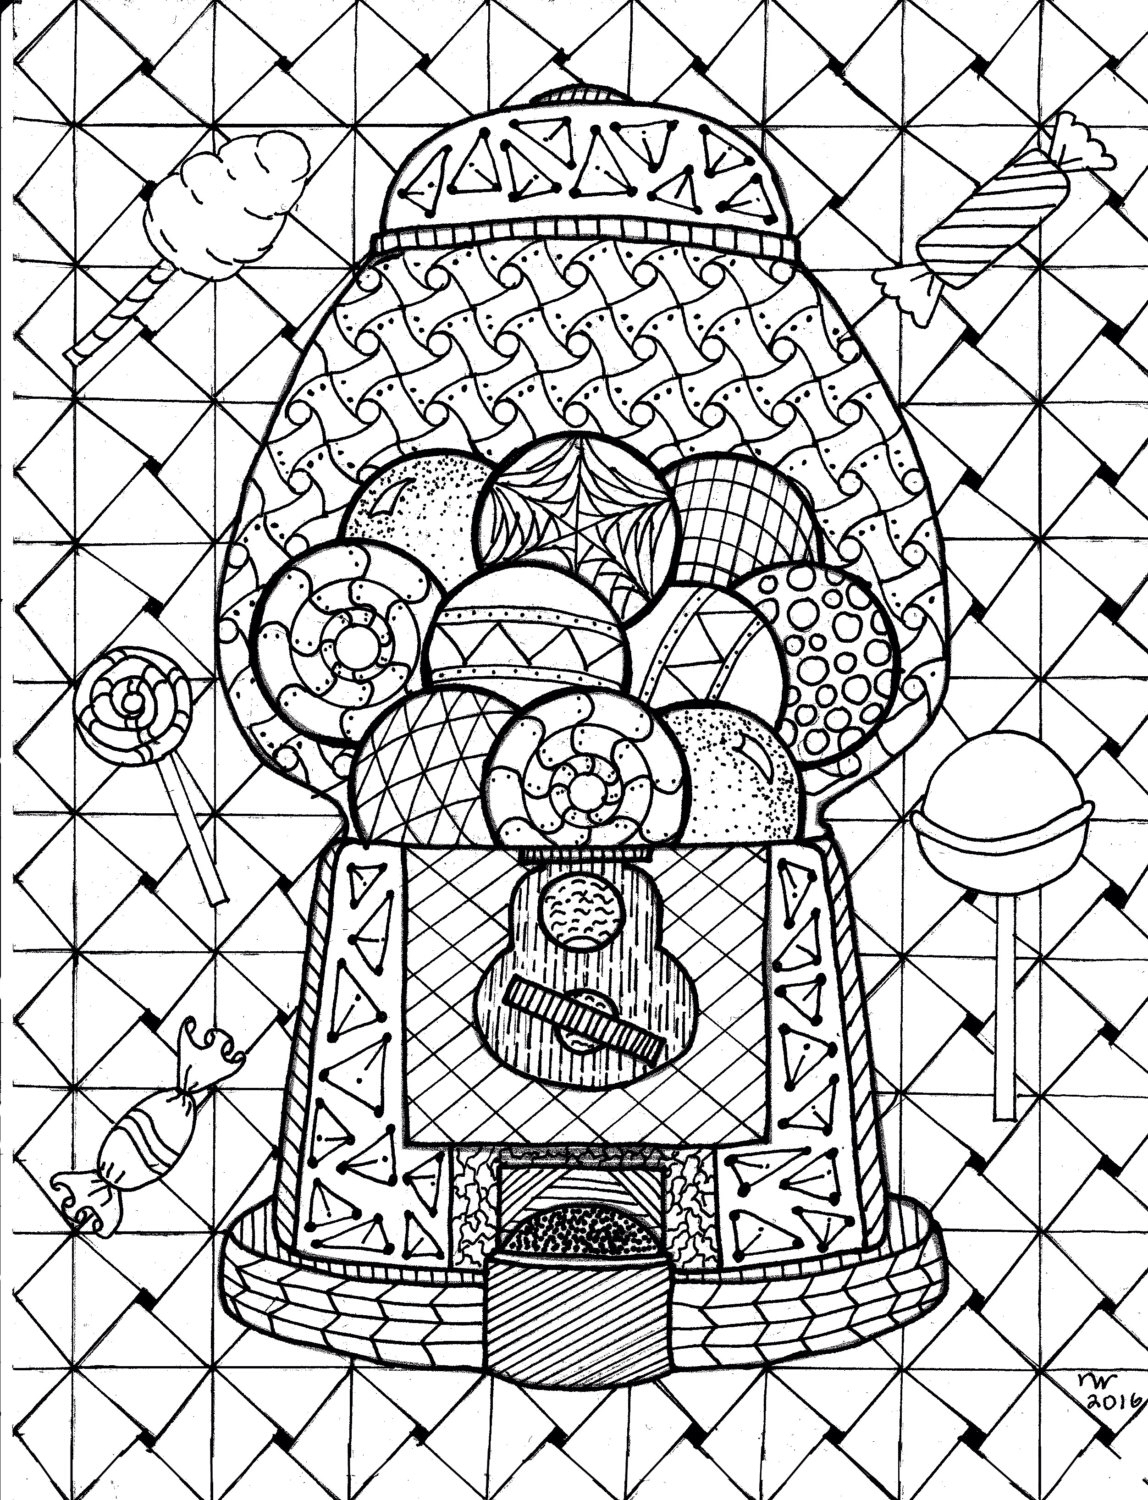 1148x1500 Printable Gumball Machine Coloring Pages Entrancing Page